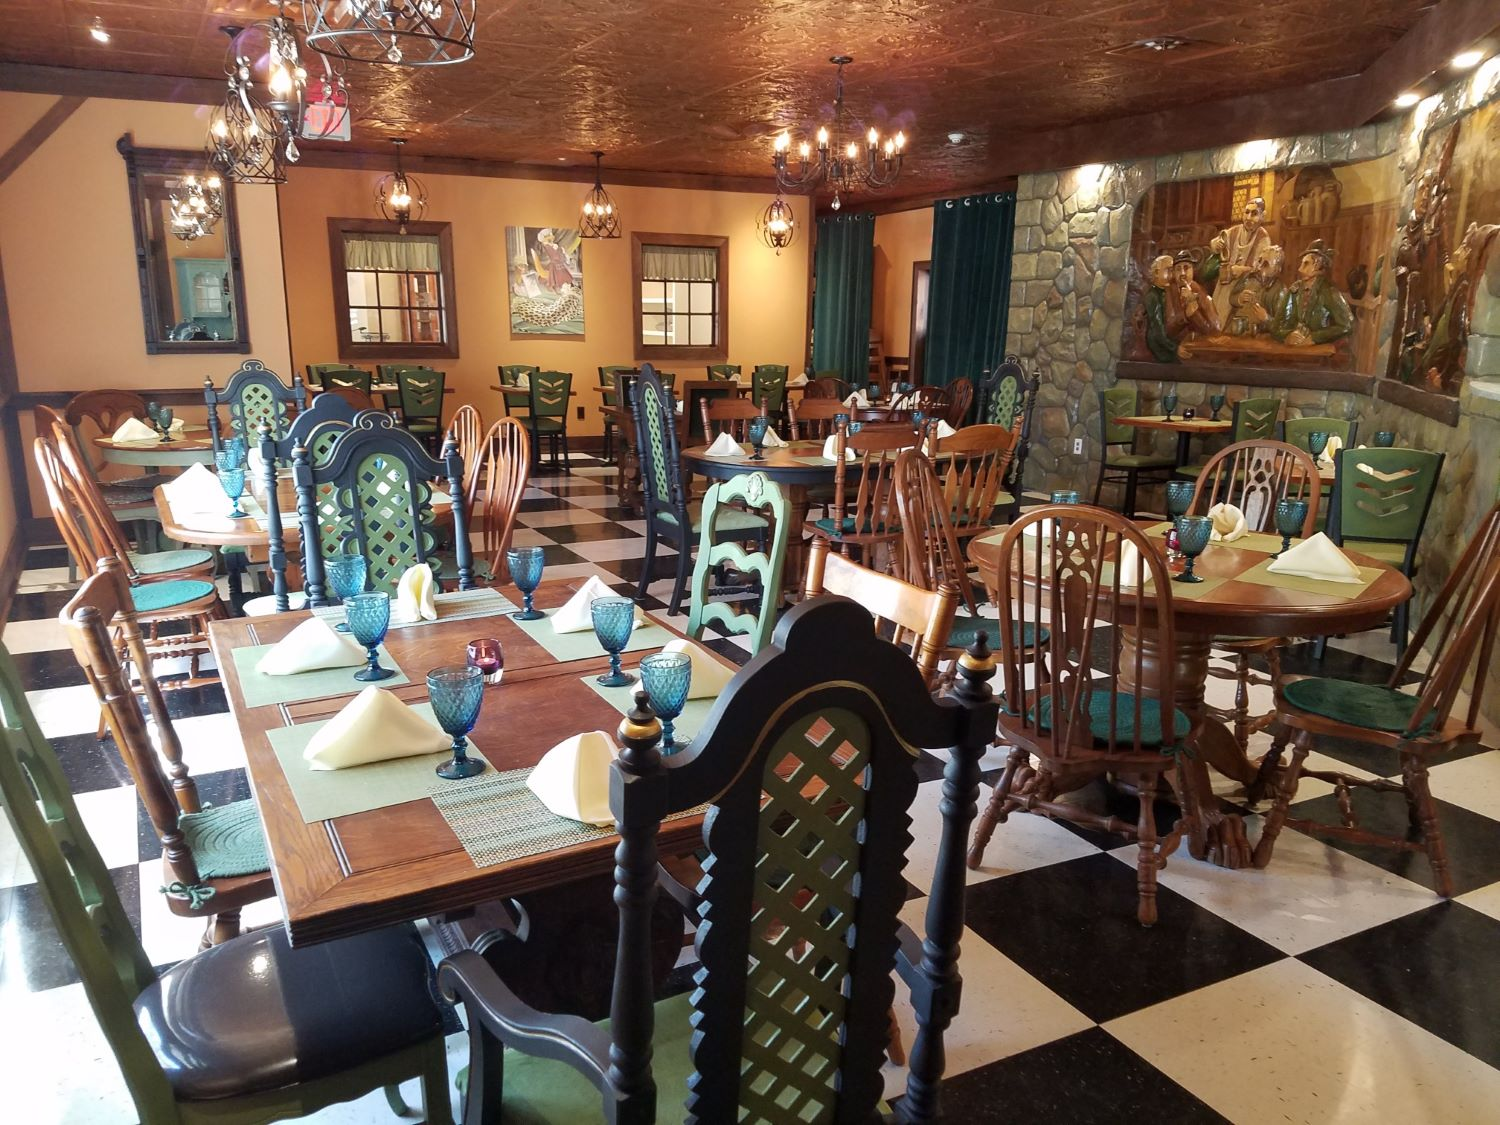 Fables-restaurant-dining-room-971-b